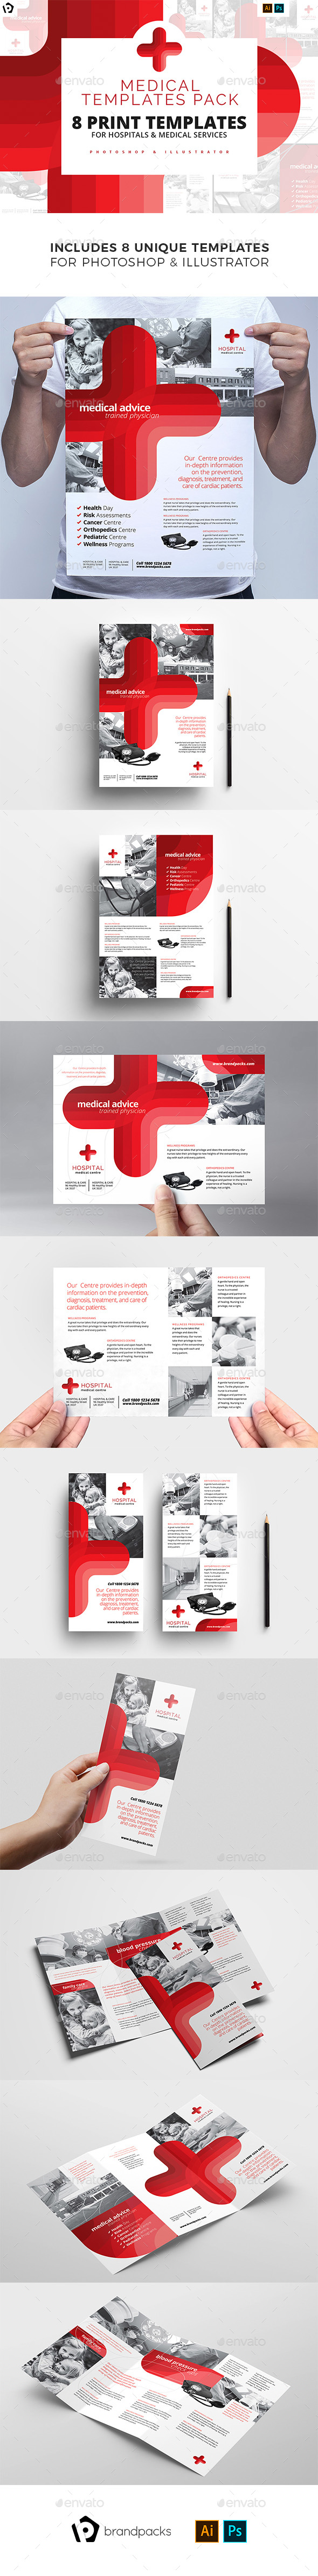 Medical Templates Bundle - Corporate Flyers